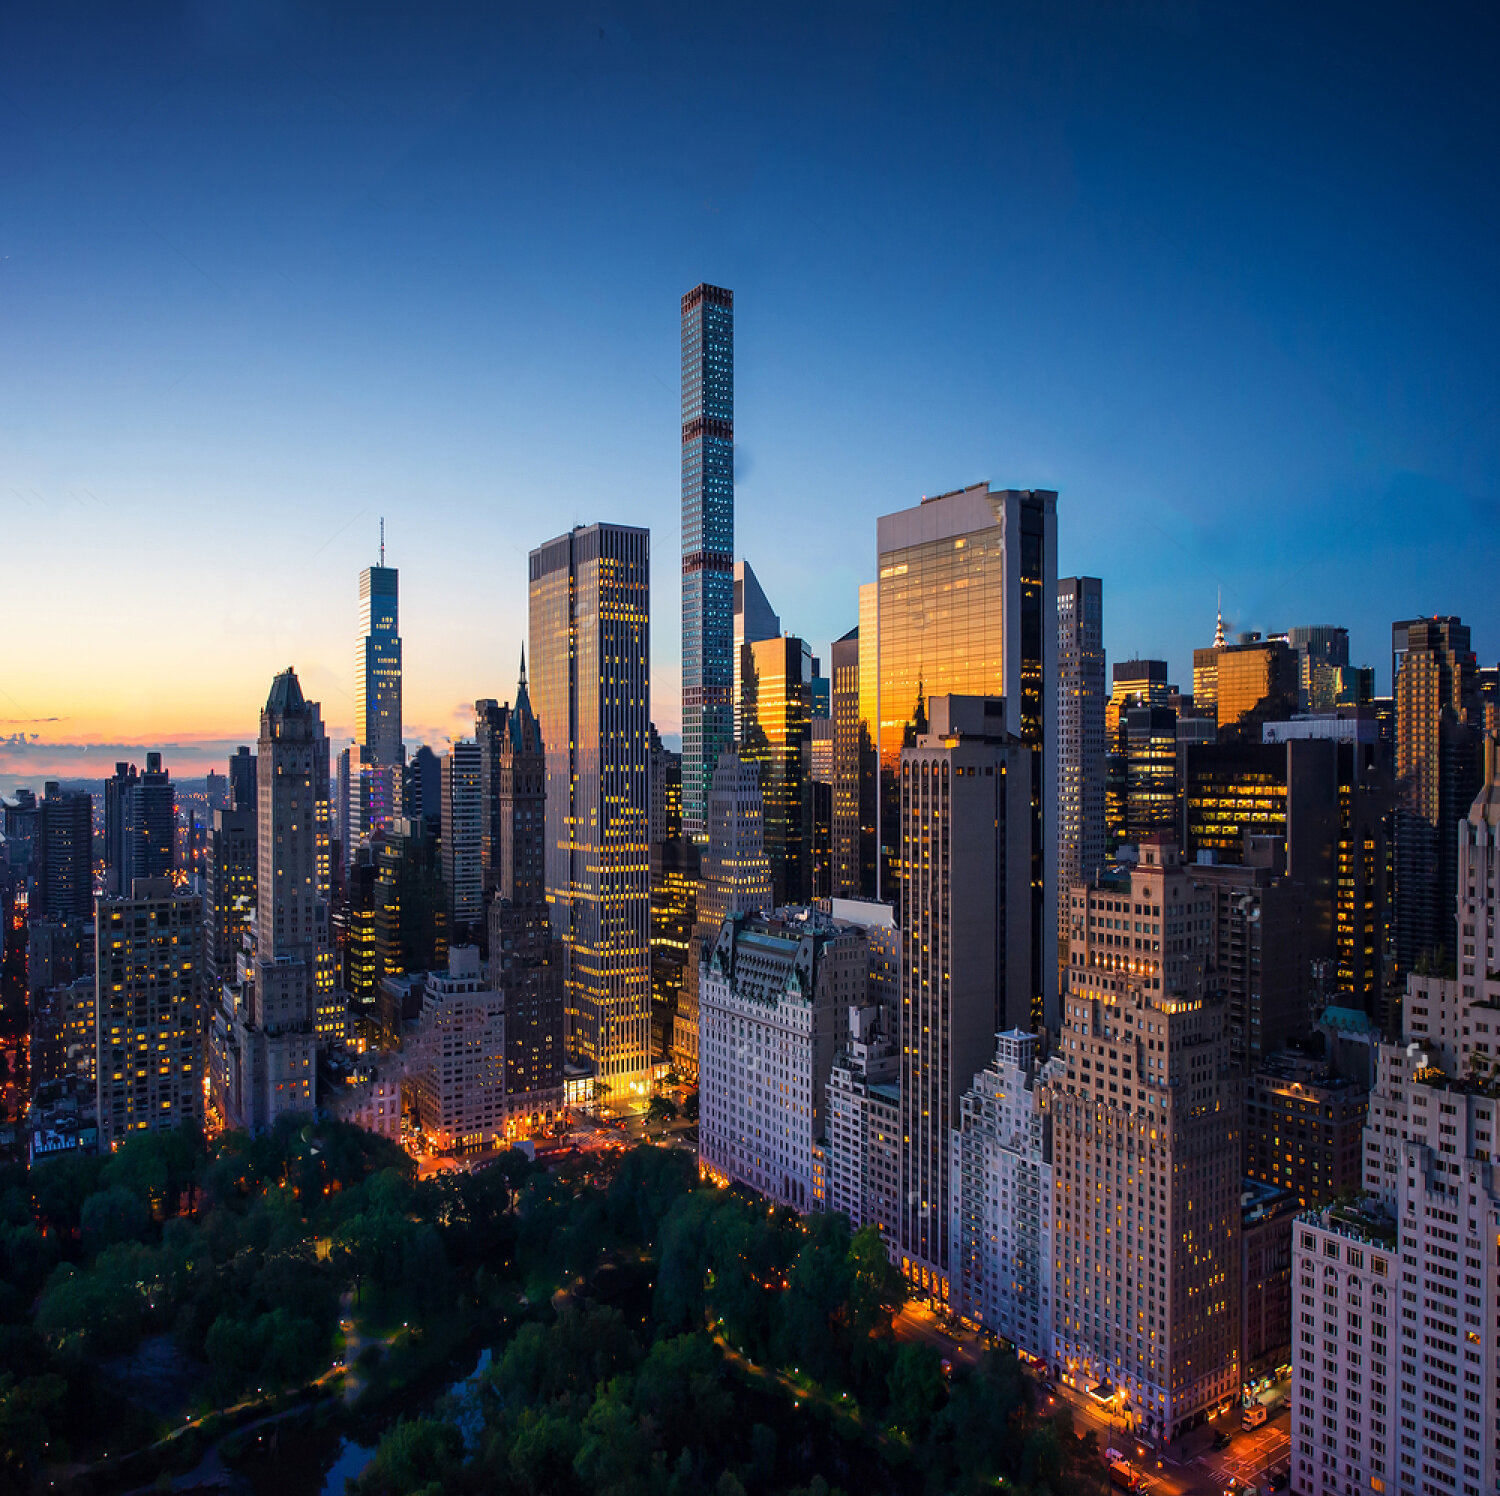 Manhattan Real Estate Trends: What Does The New York LLC Crackdown Mean For NYC Condos